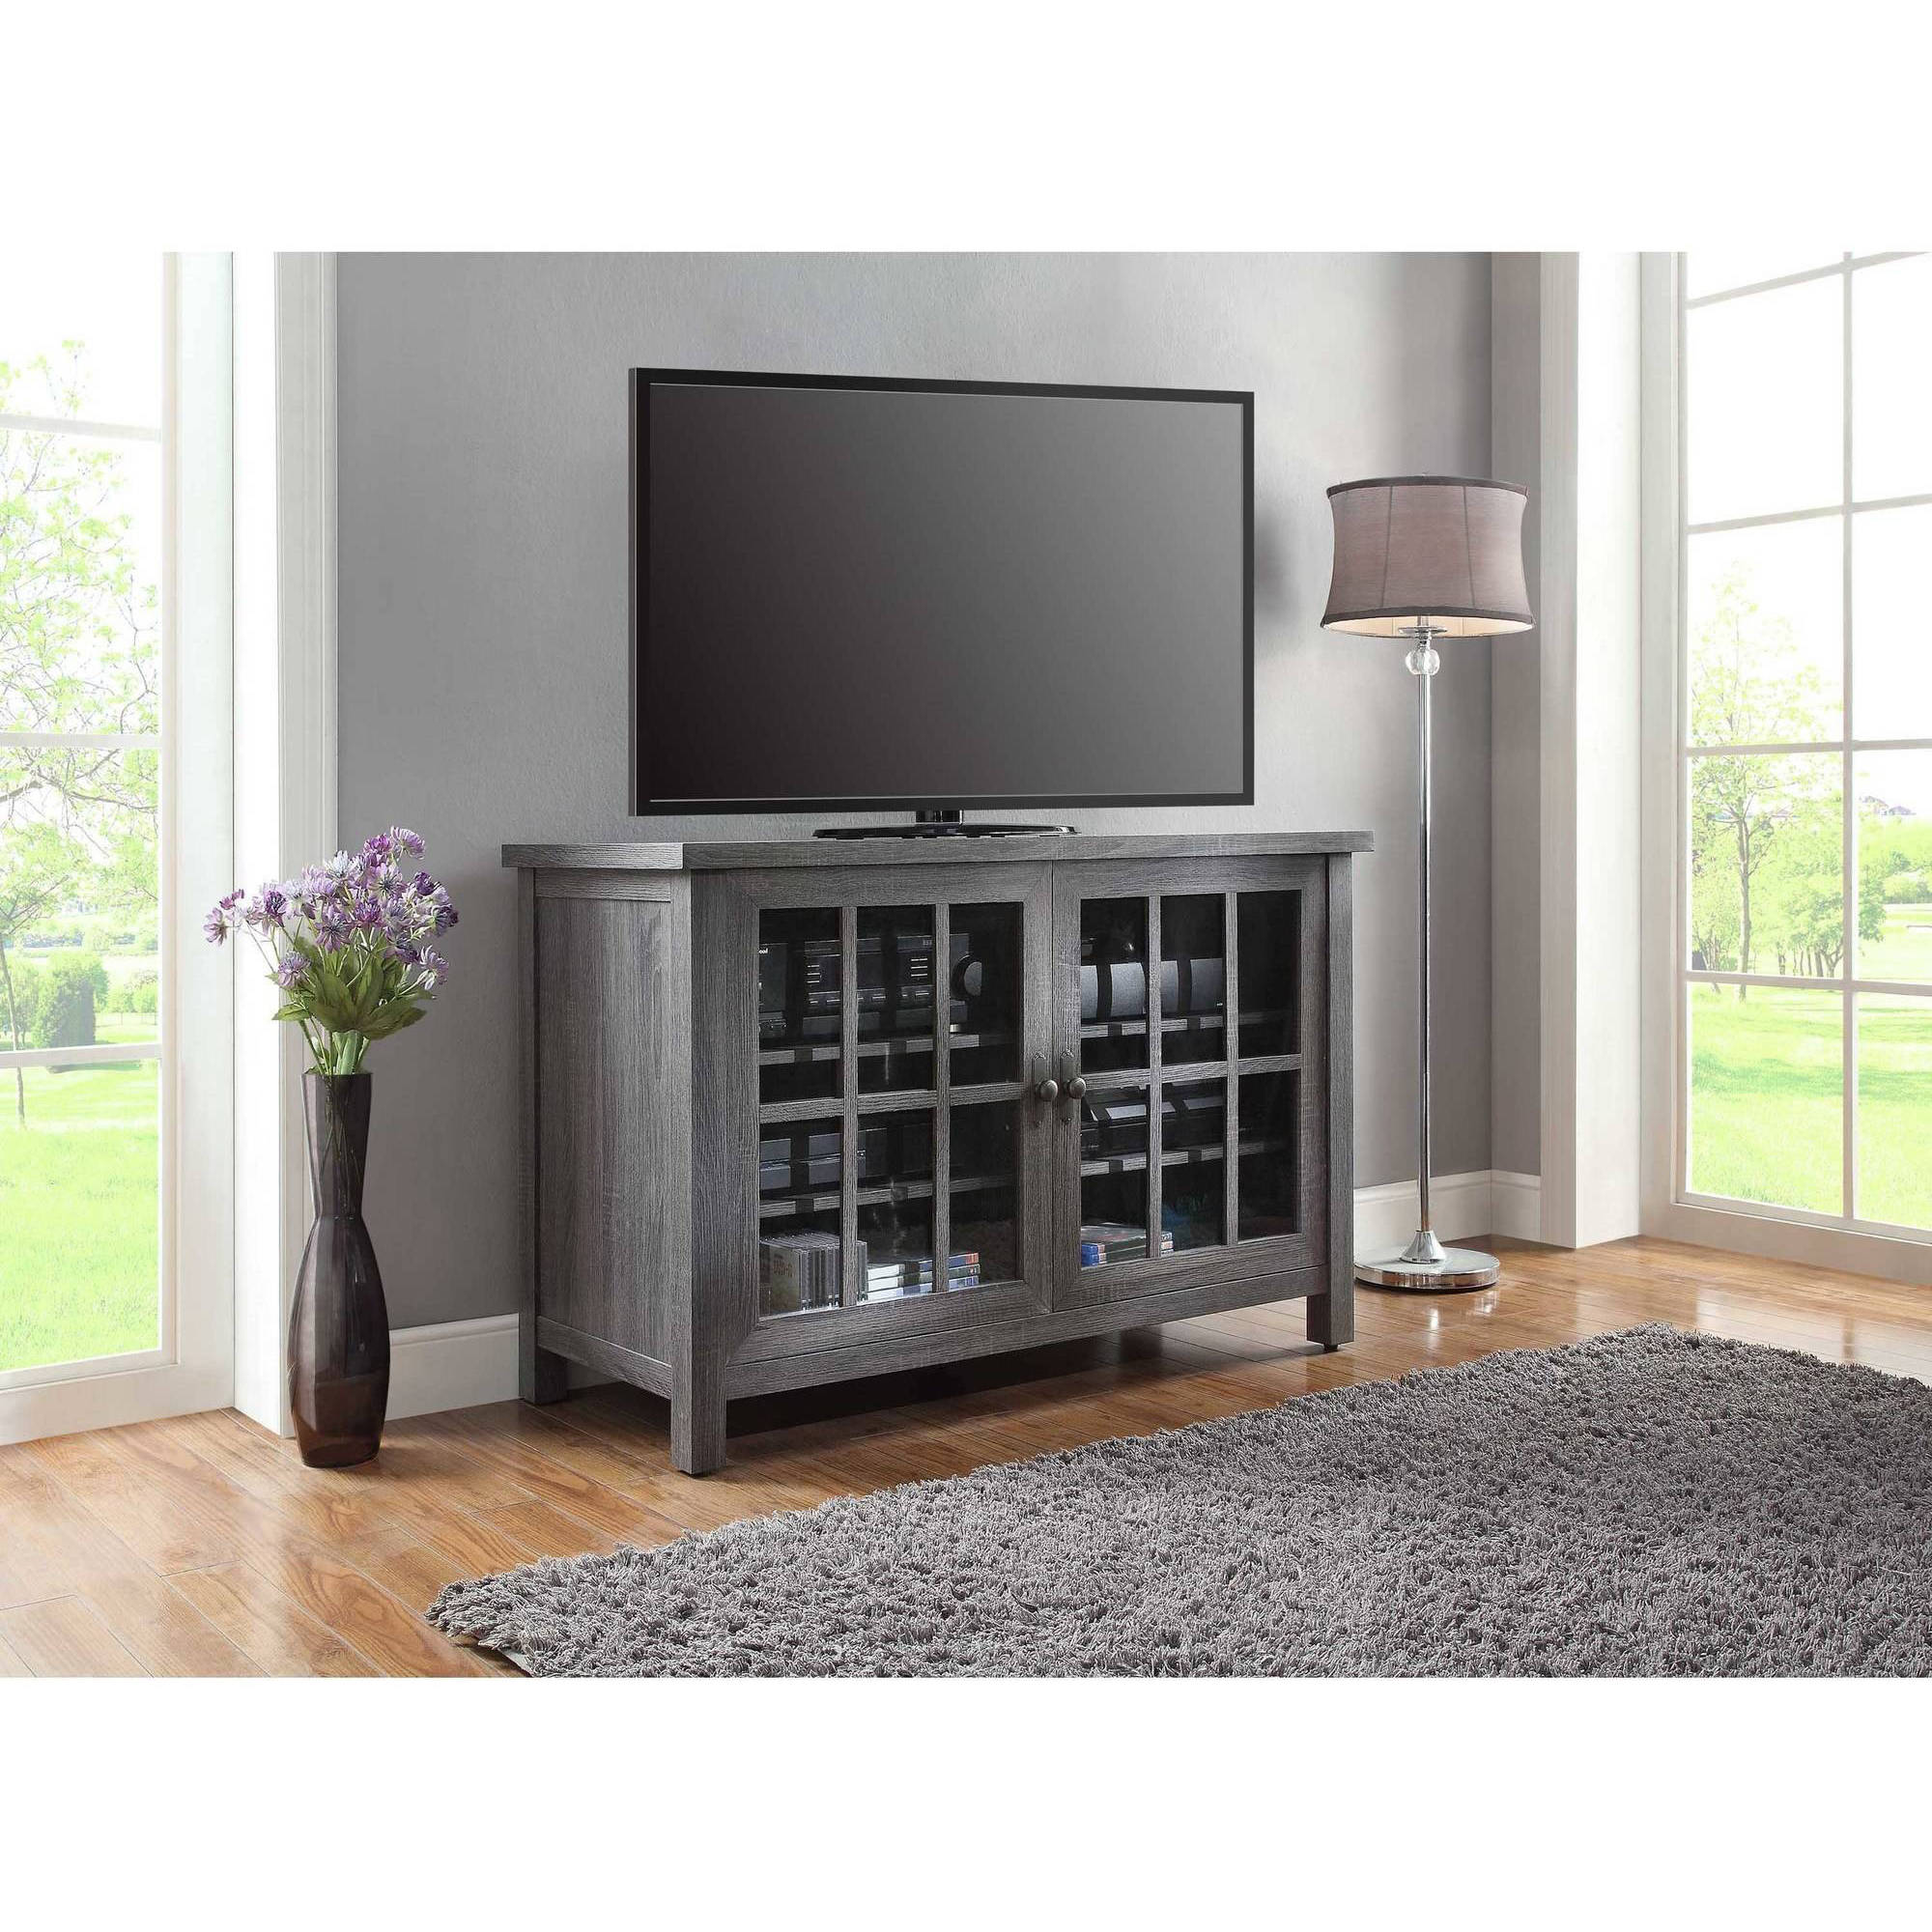 Better homes and gardens oxford square tv console for tvs up to 55 walmart com